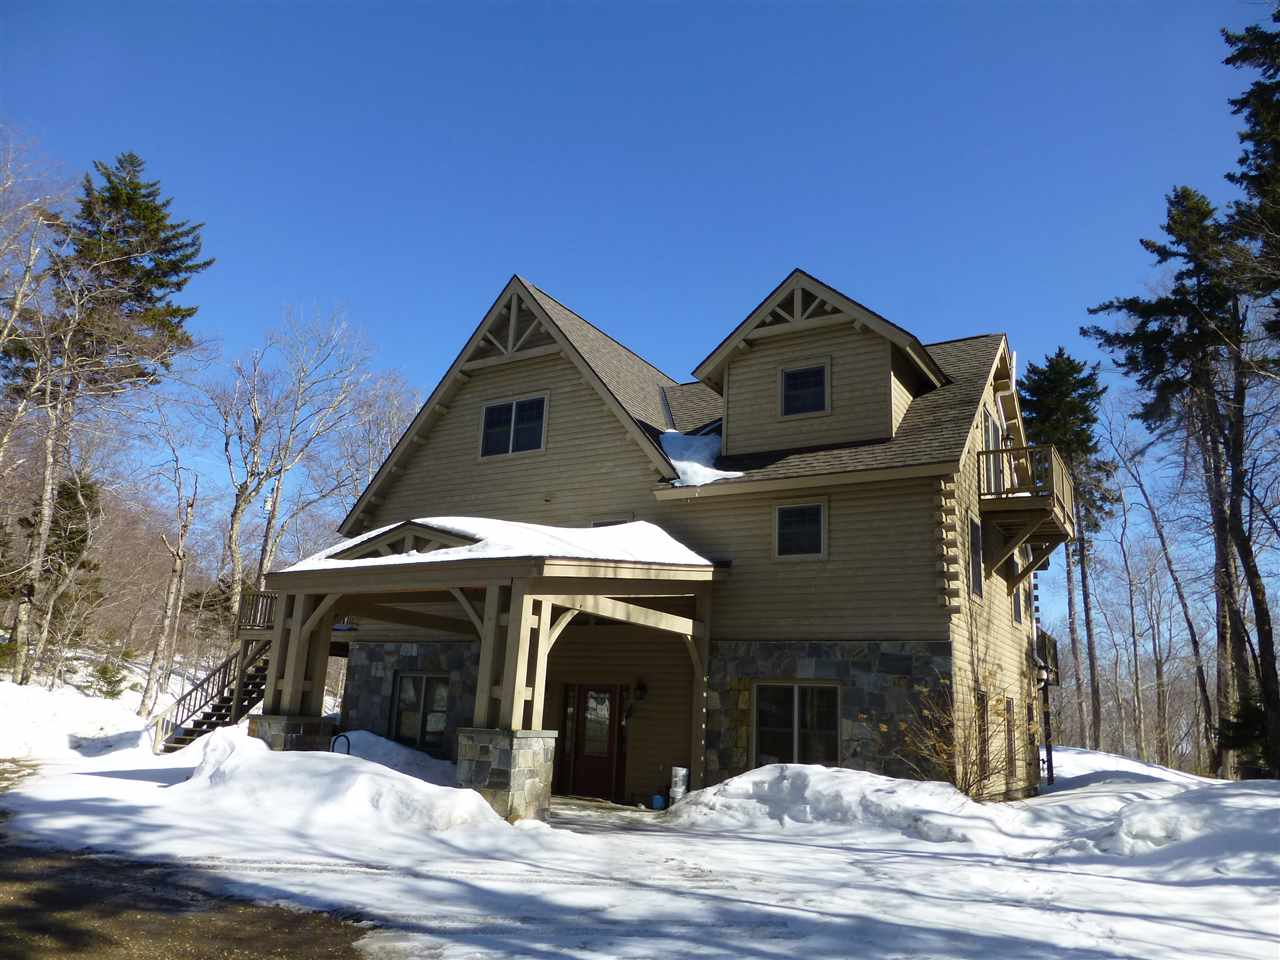 Mount-Snow-Real-Estate-4410868-21